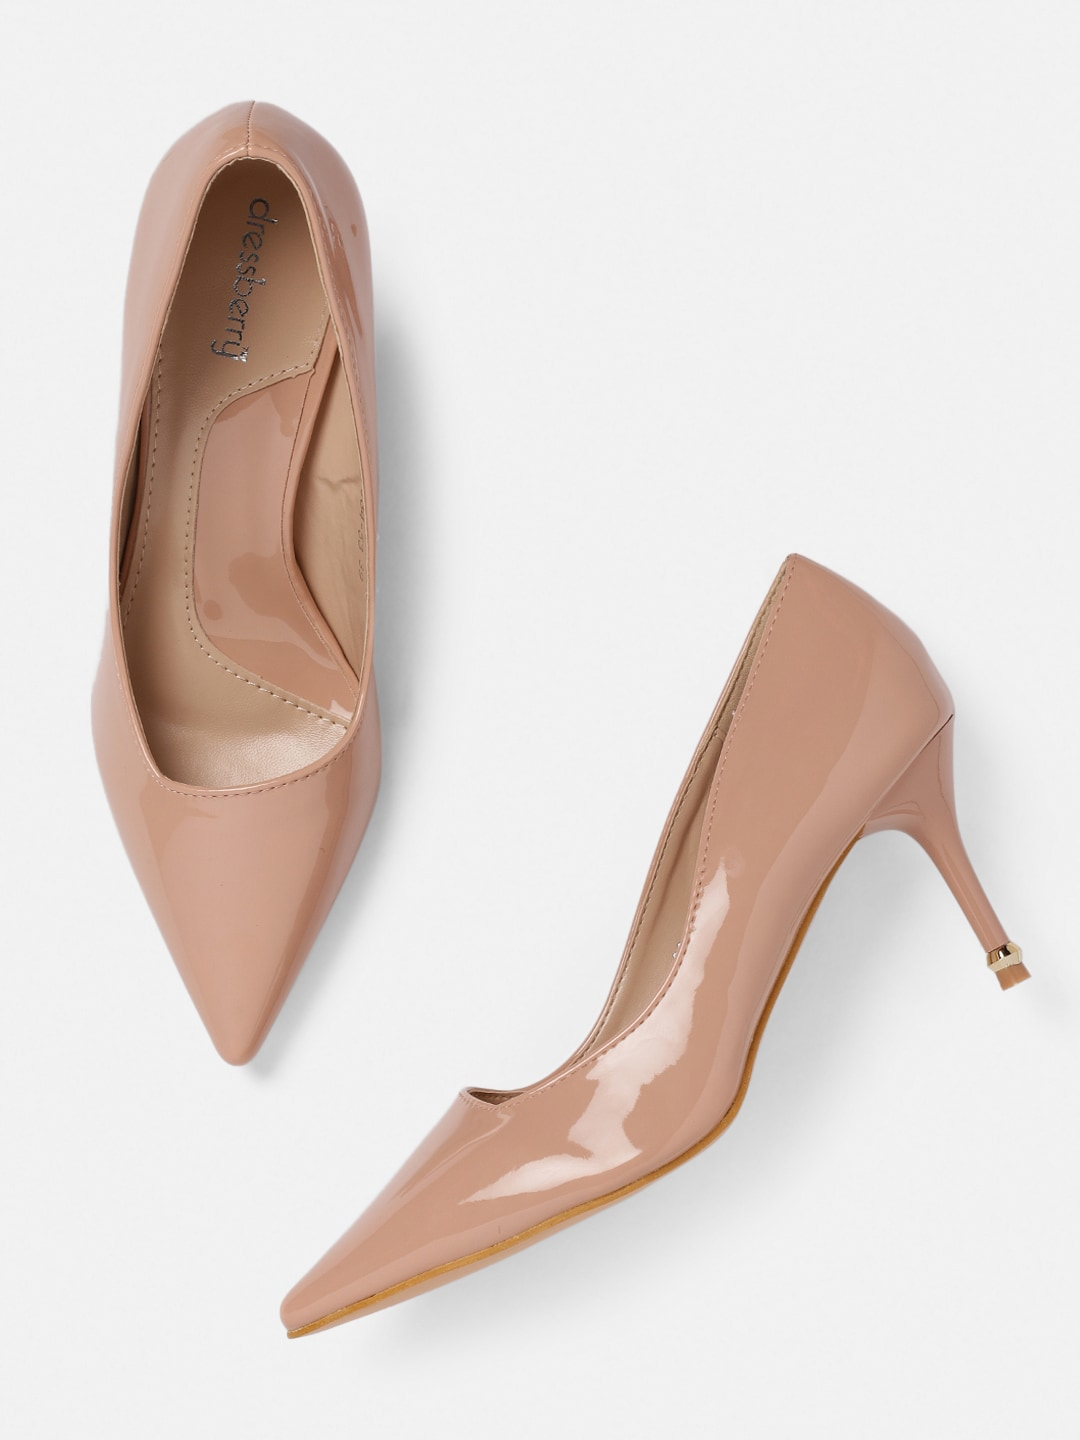 7e5a4ce9a02f Dressberry 2 Inches Heels - Buy Dressberry 2 Inches Heels online in India